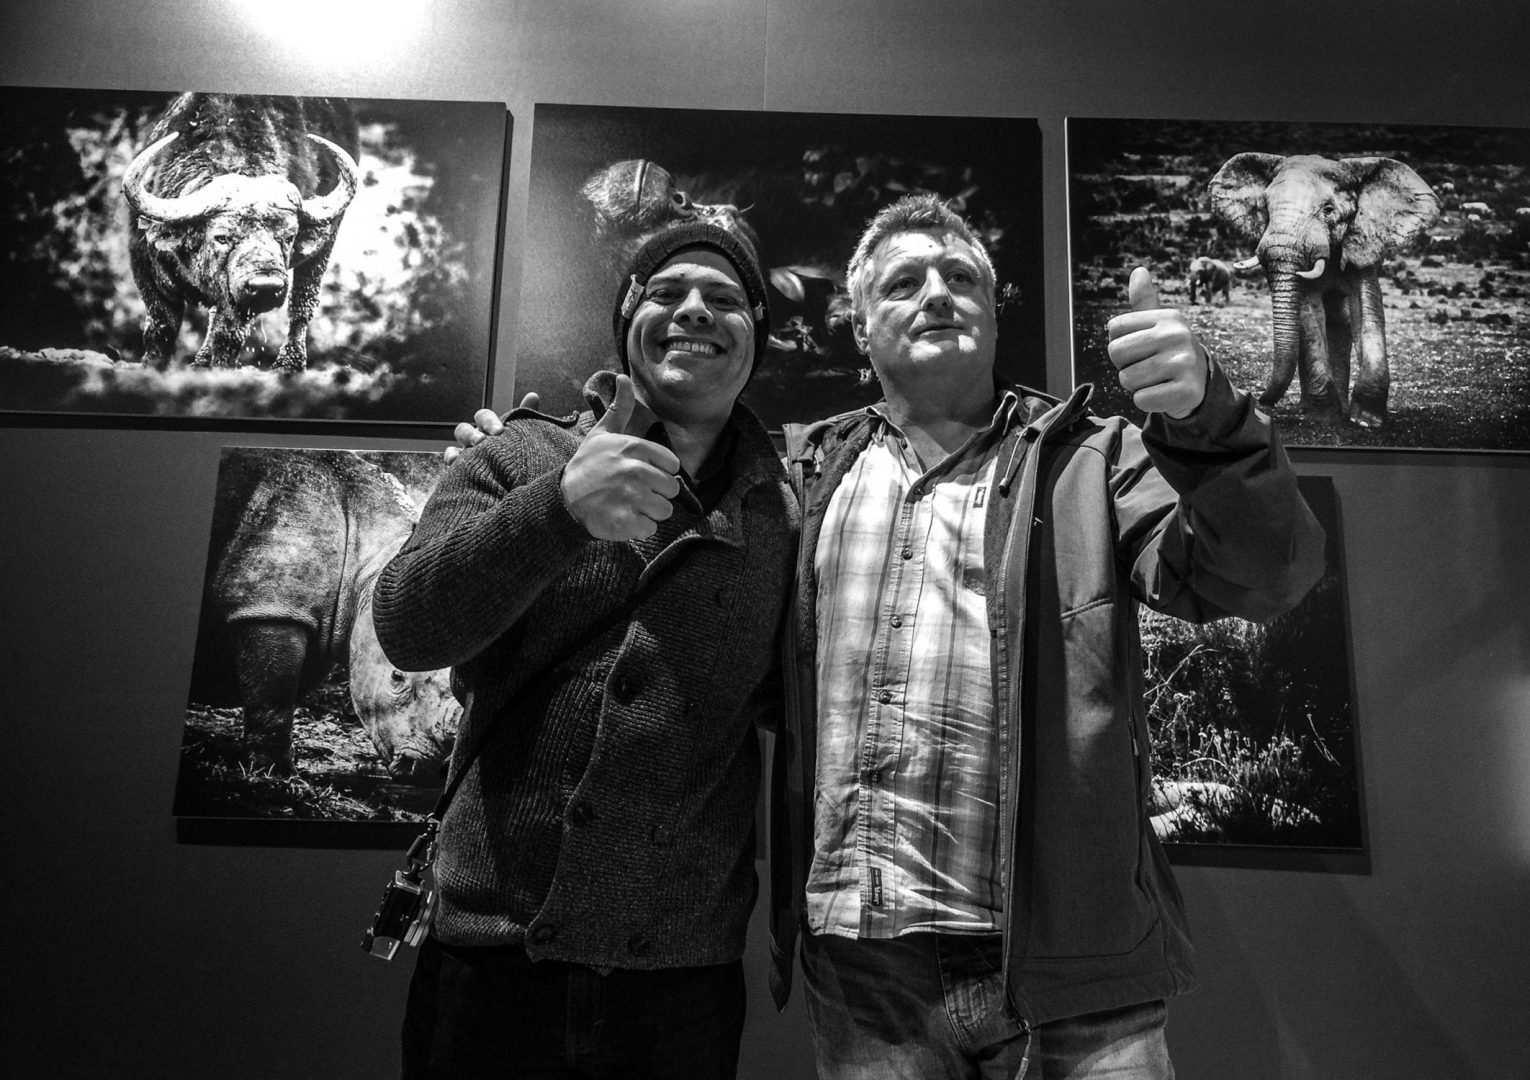 Me and Peter Delanay at his exhibition wall.